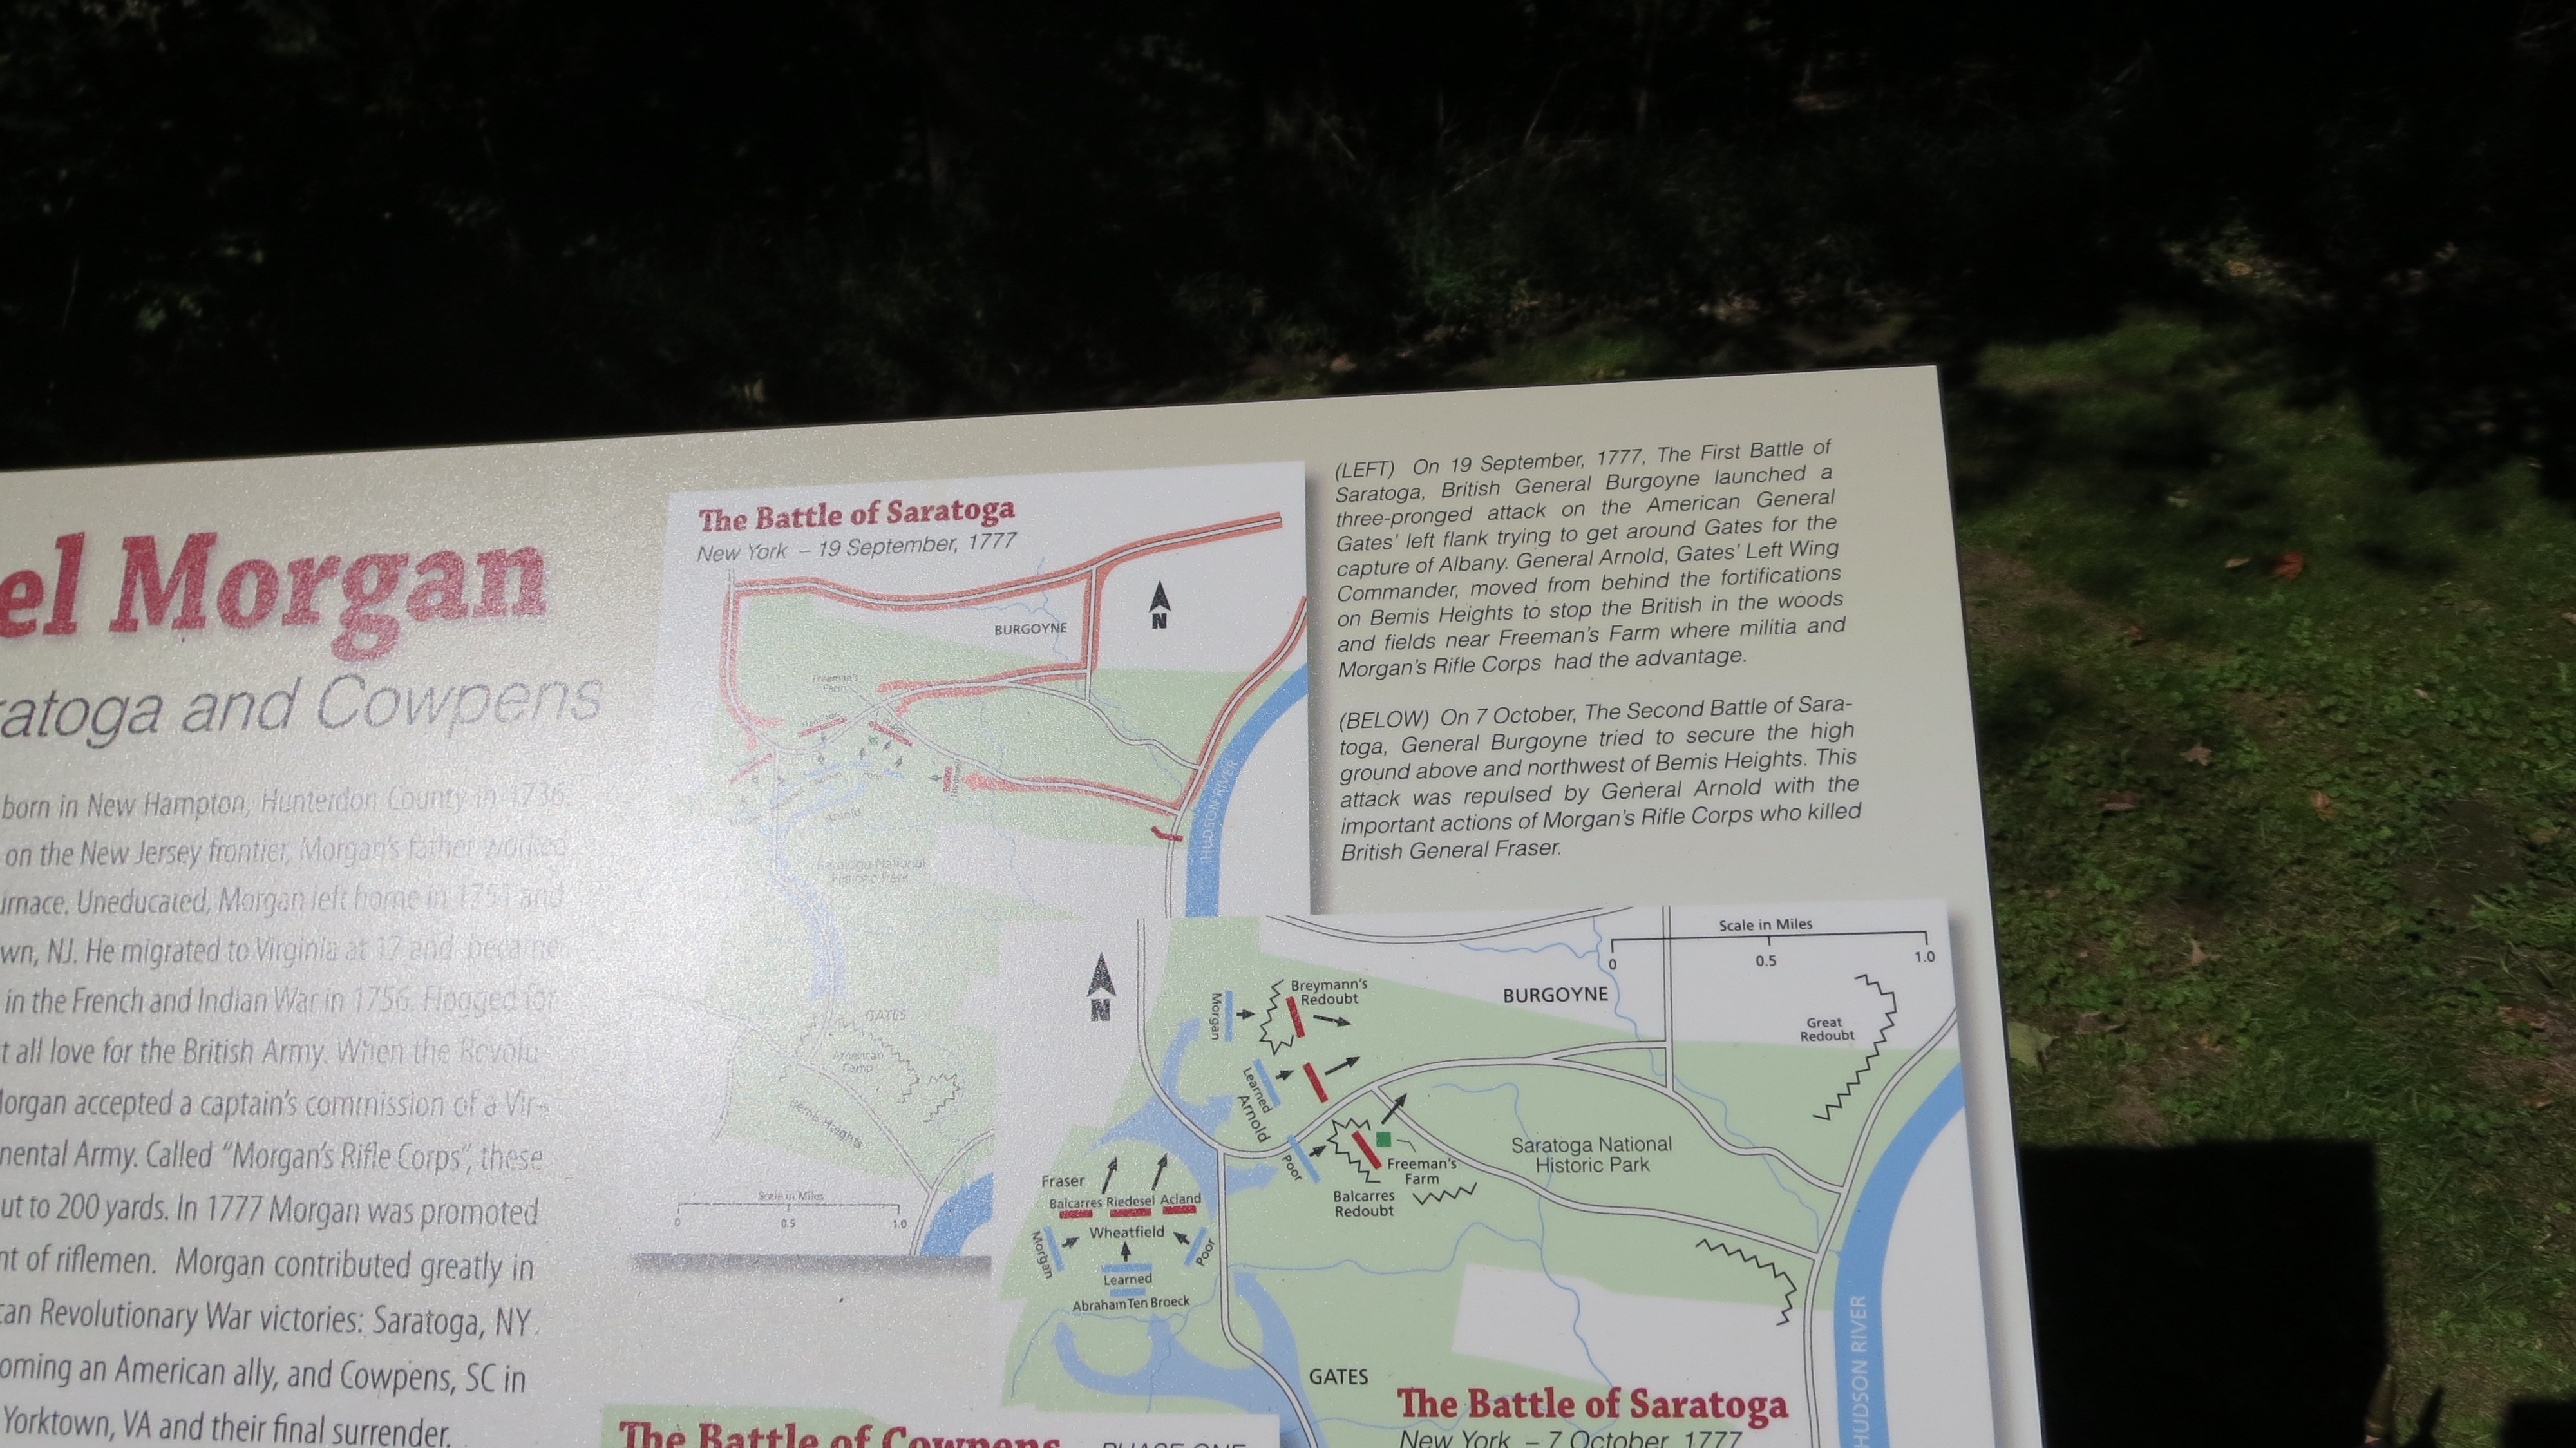 The Battle of Saratoga - additional detail